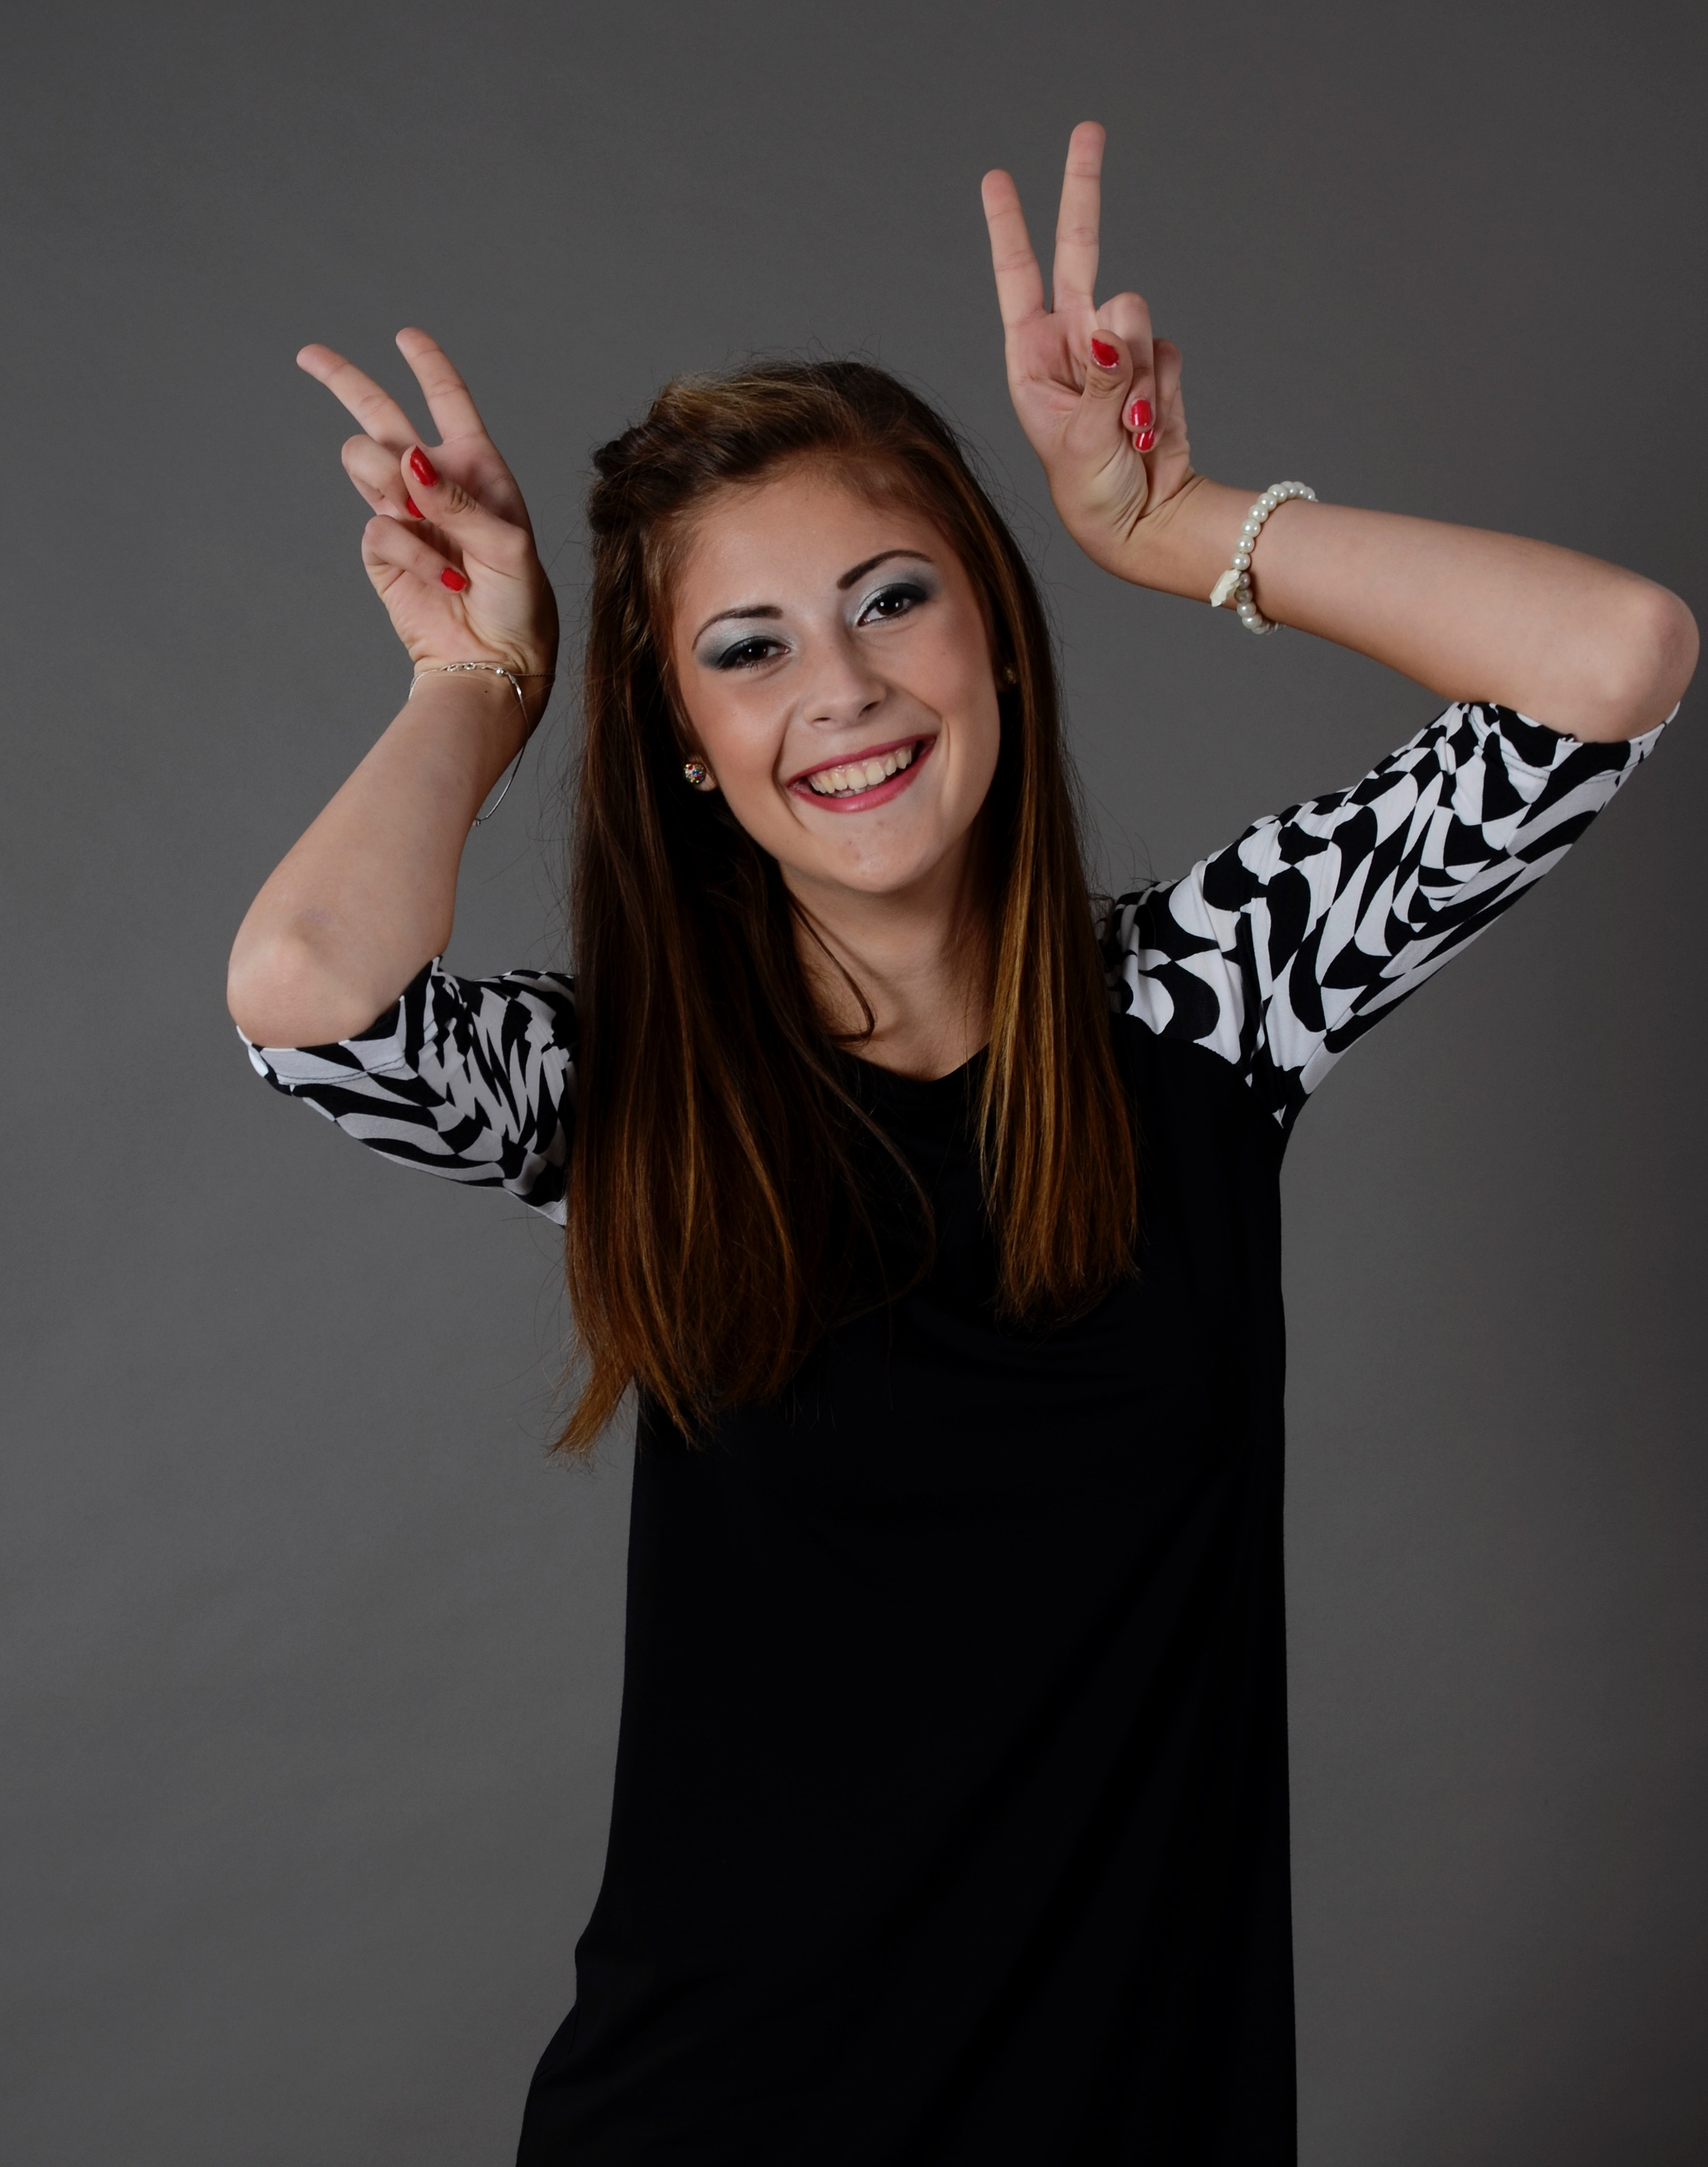 Woman smiling and doing peace signs · free stock photo.